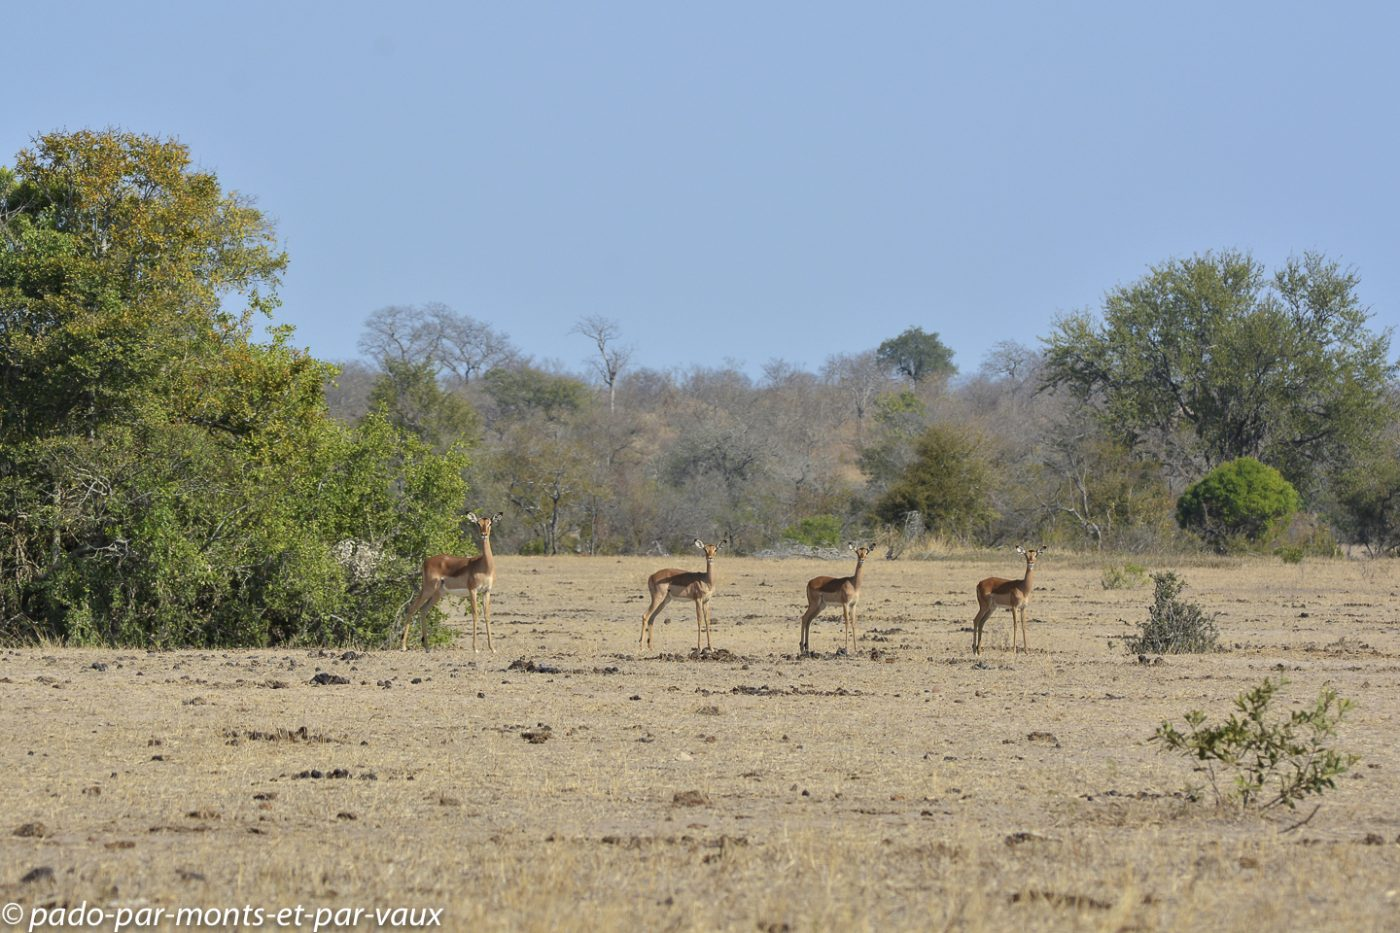 Rhino walking trail - Impalas